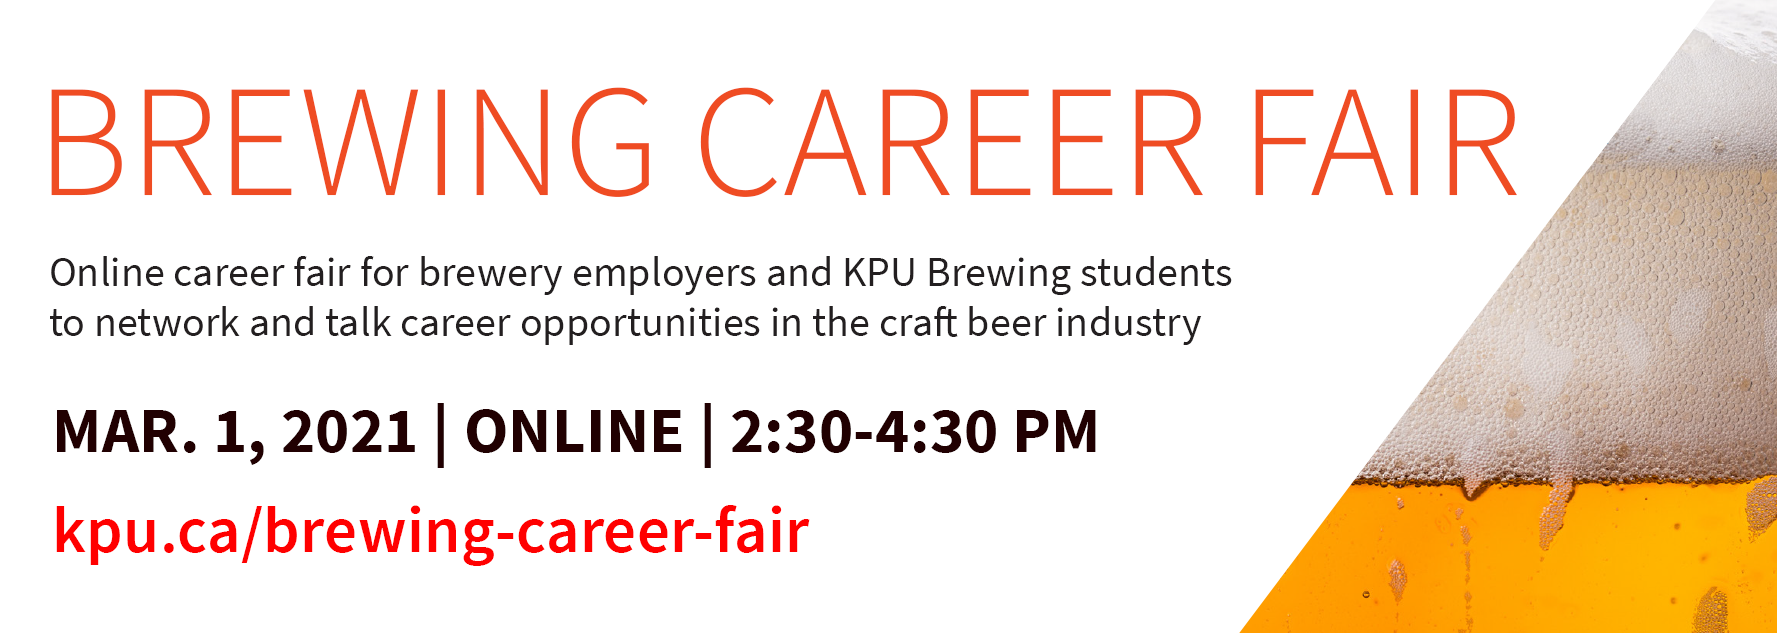 KPU Brewing Career Fair, online career fair, brewing, beer industry, brewer, head brewer, assistant brewer, brewing jobs, brewery jobs